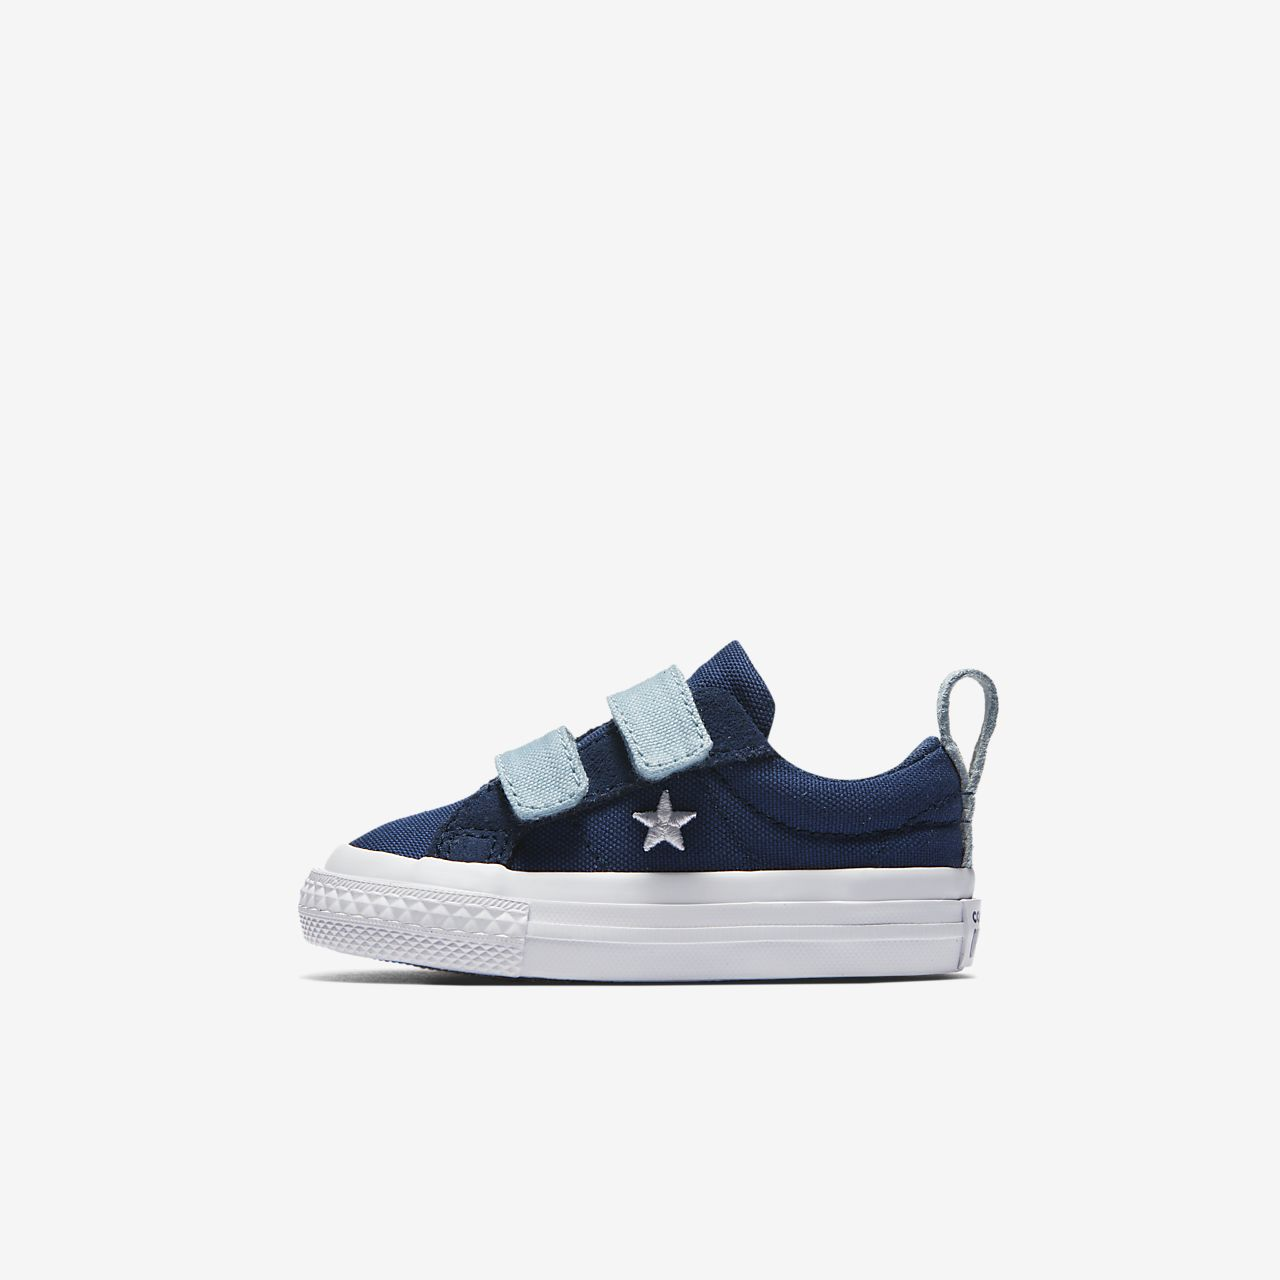 quality design 57c6d c4e77 converse-one-star-2v-country-pride-canvas-low-top-infant-toddlers-shoe -rTtwMZ.jpg